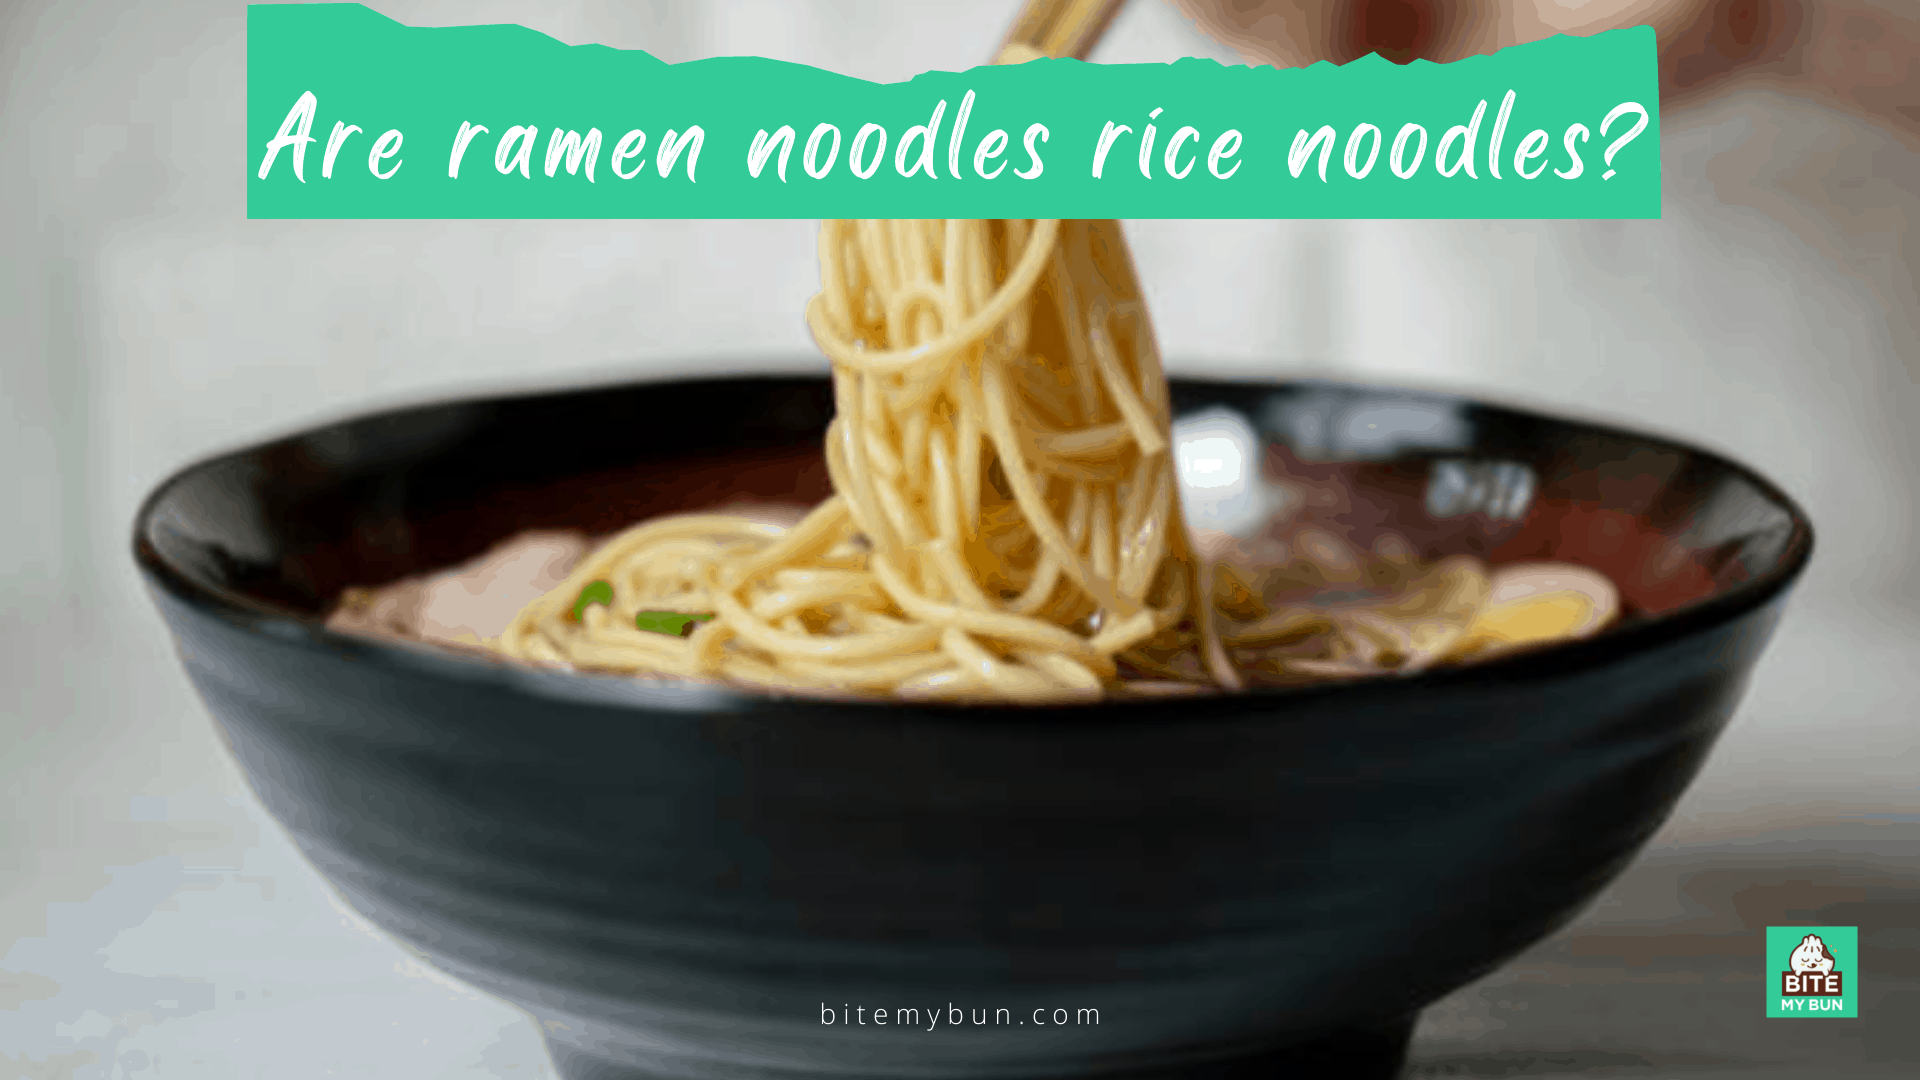 Are ramen noodles rice noodles? How ramen are made